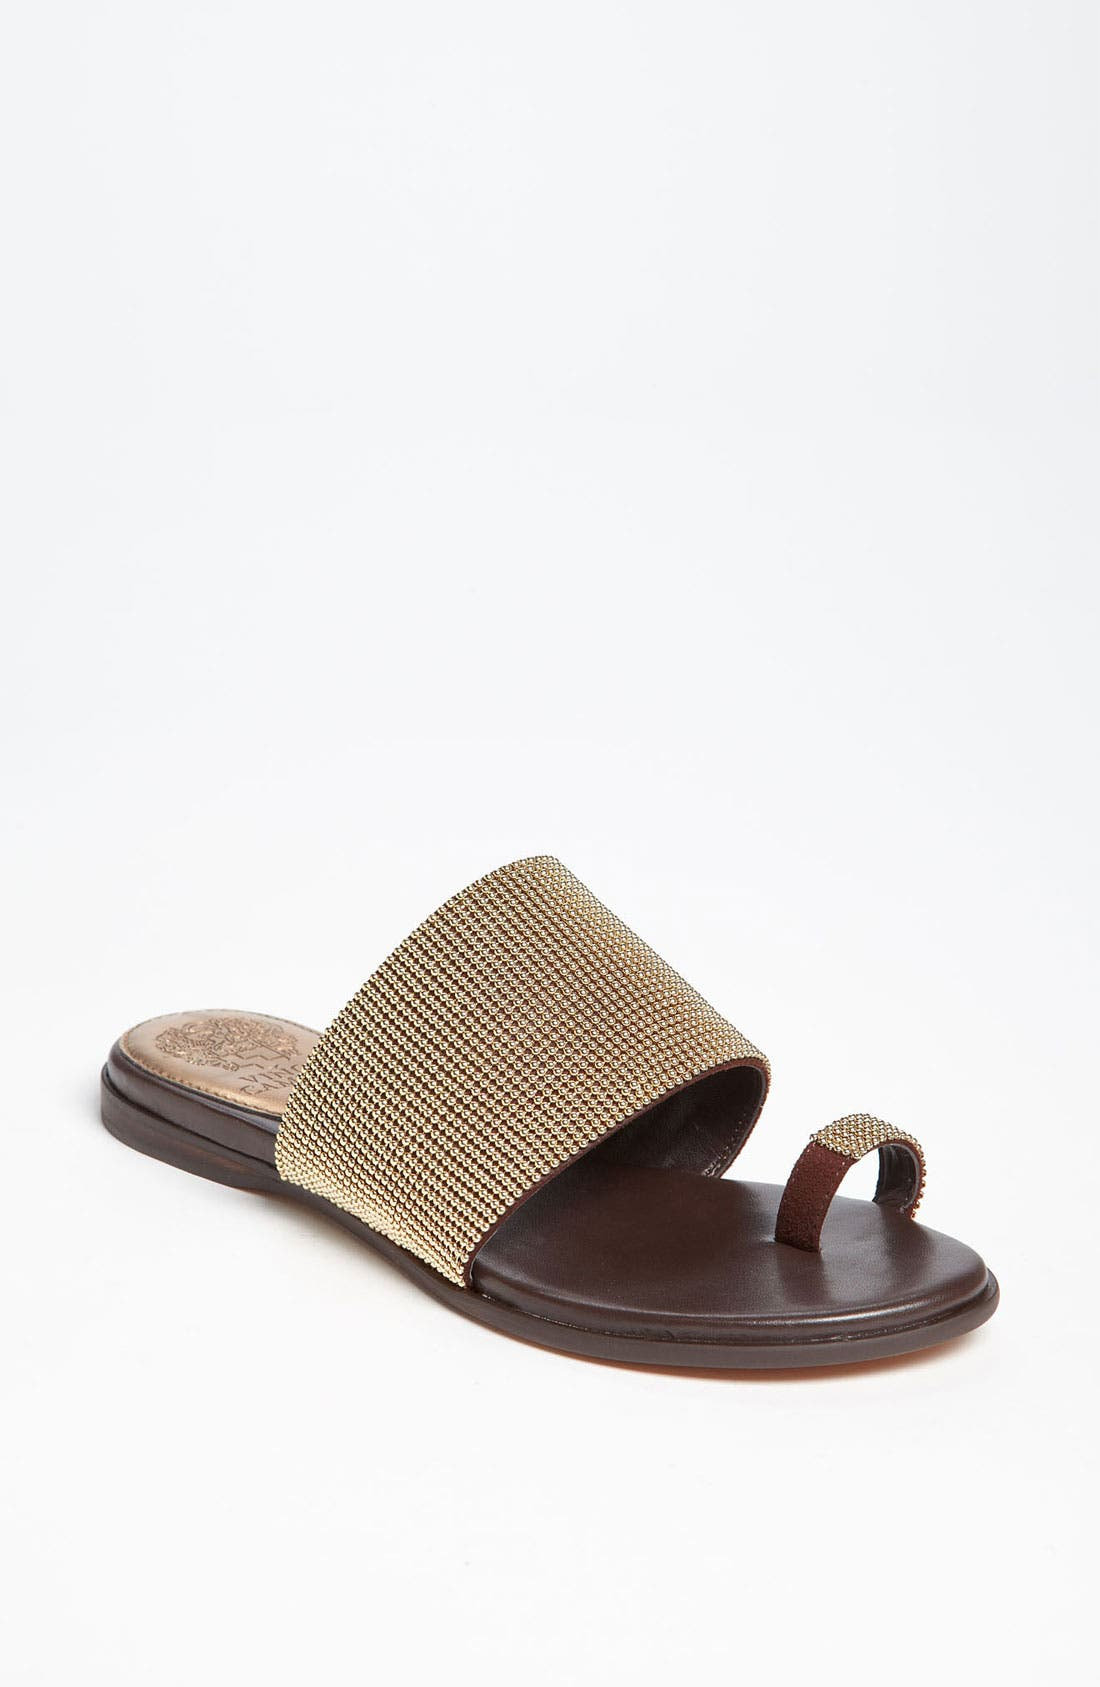 Main Image - Vince Camuto 'Athens' Sandal (Online Only)